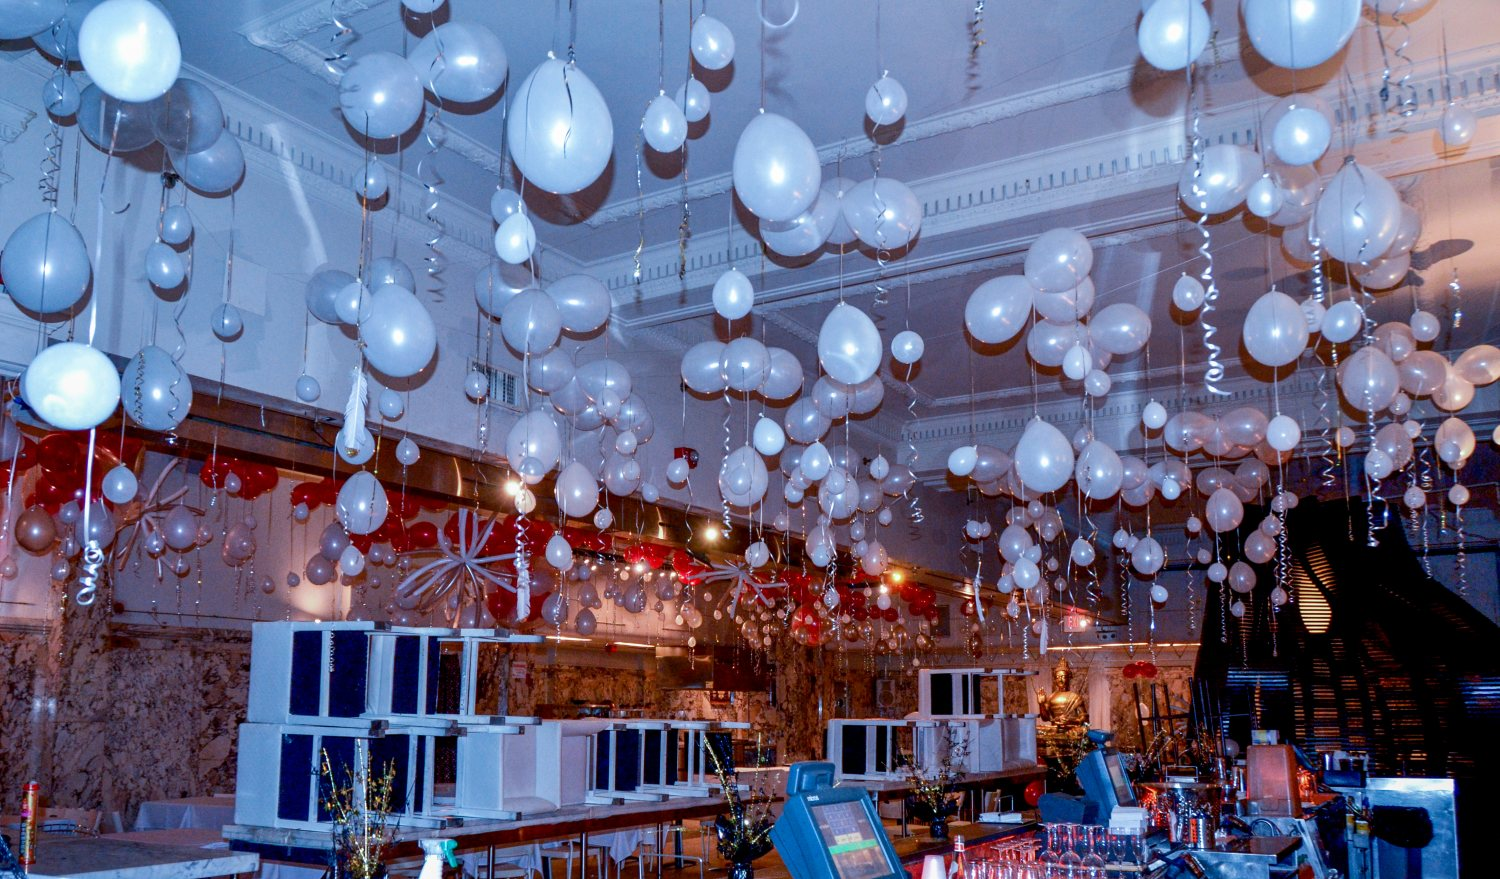 Ceiling Balloon Decoration - Hanging Balloon Arrangements